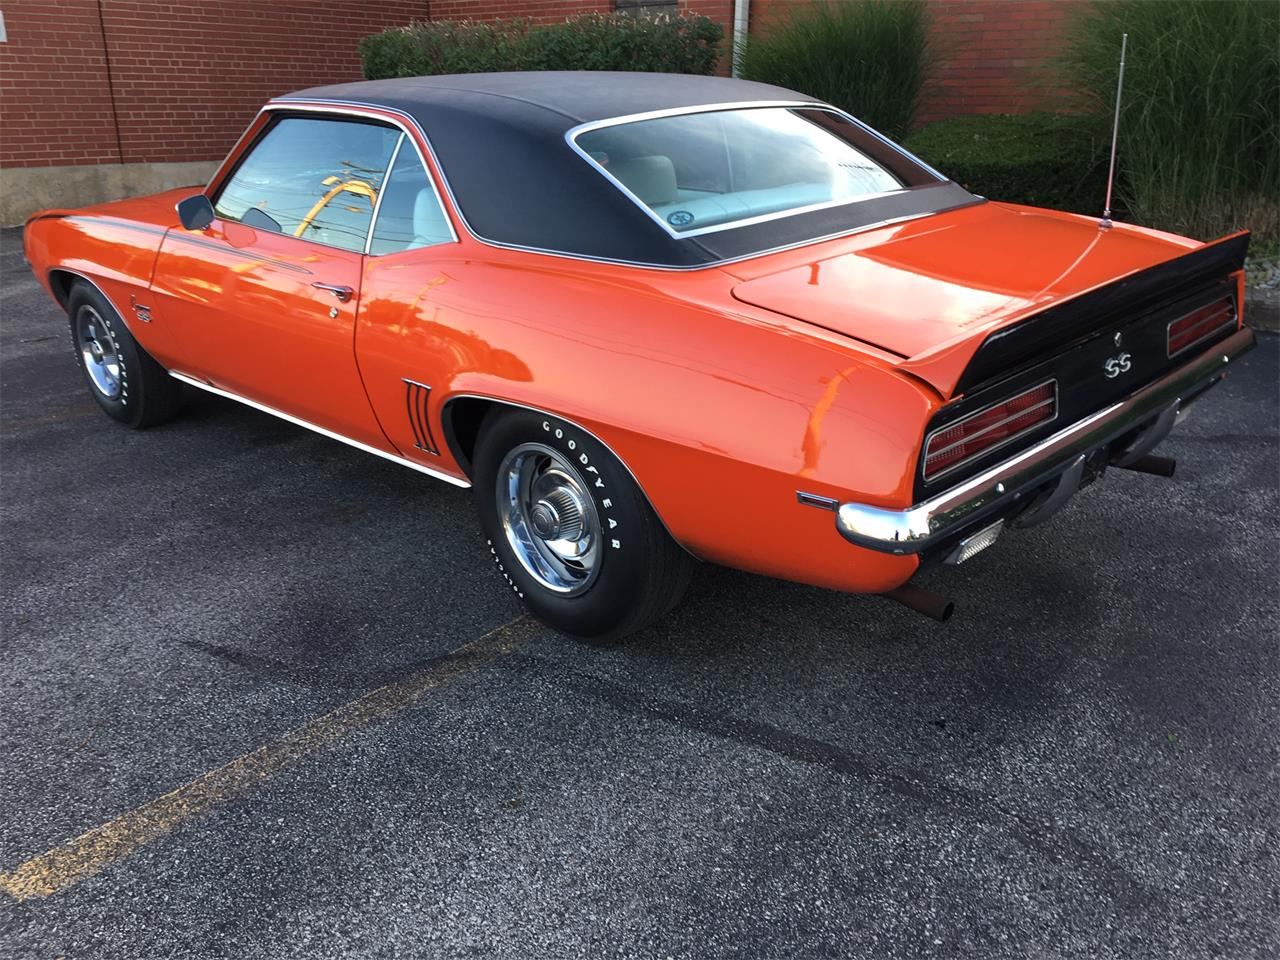 Large Picture of Classic 1969 Chevrolet Camaro RS/SS located in Pennsylvania Auction Vehicle Offered by Central Pennsylvania Auto Auction - QF5Q